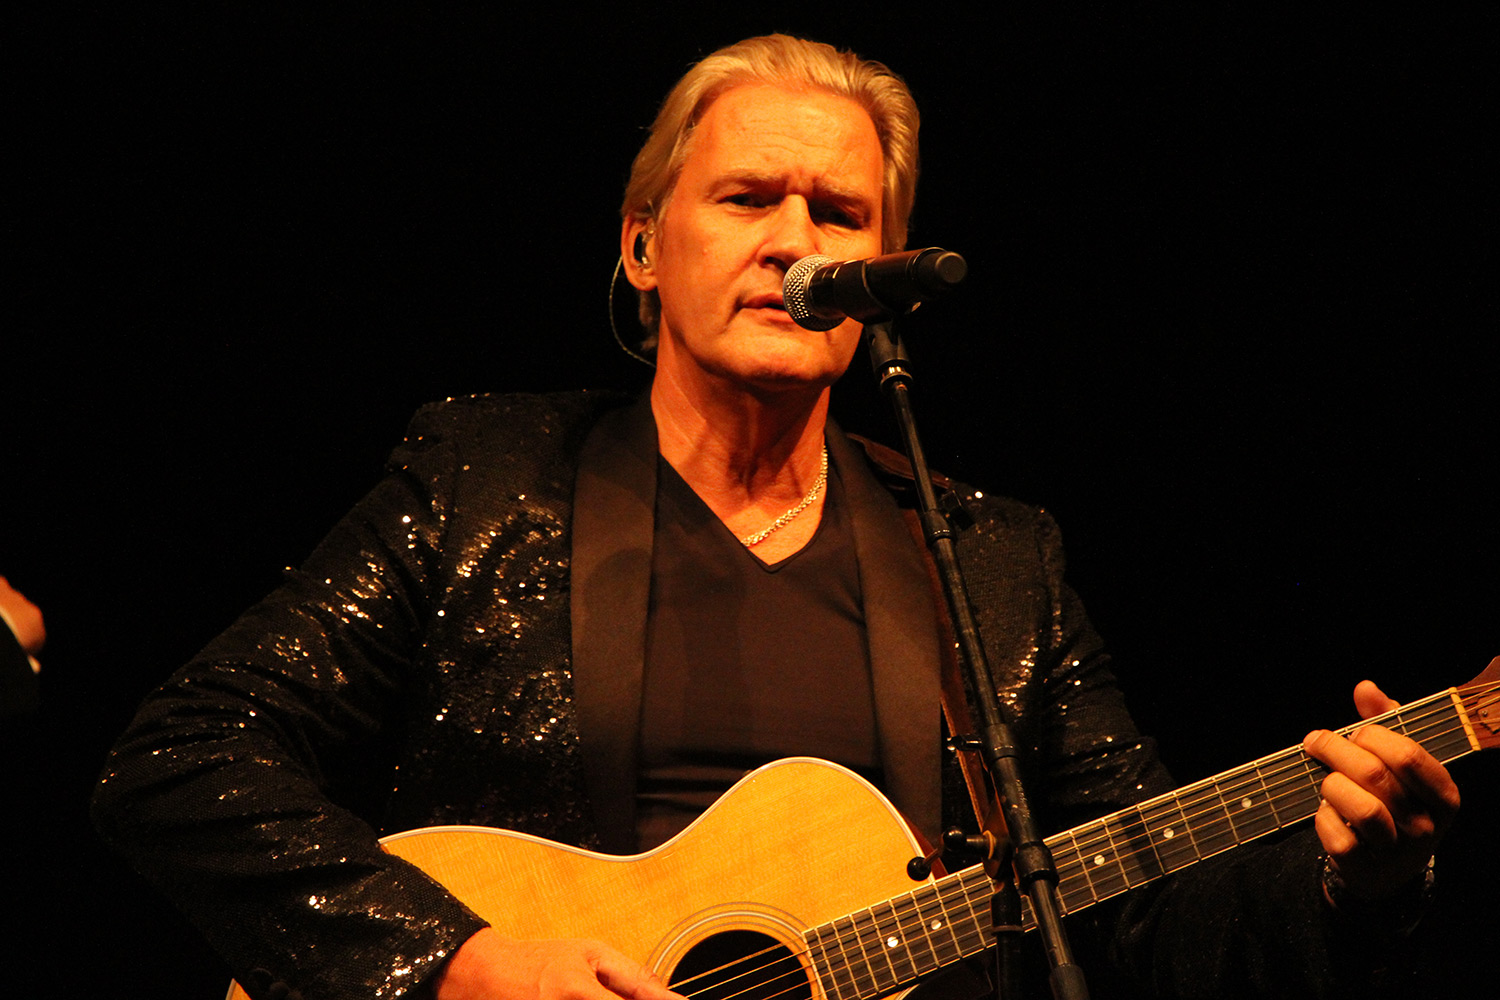 Calendar 2015 Romania Calendar For Year 2018 United States Time And Date Johnny Logan Criticises Eurosong And Confirms Hell Never